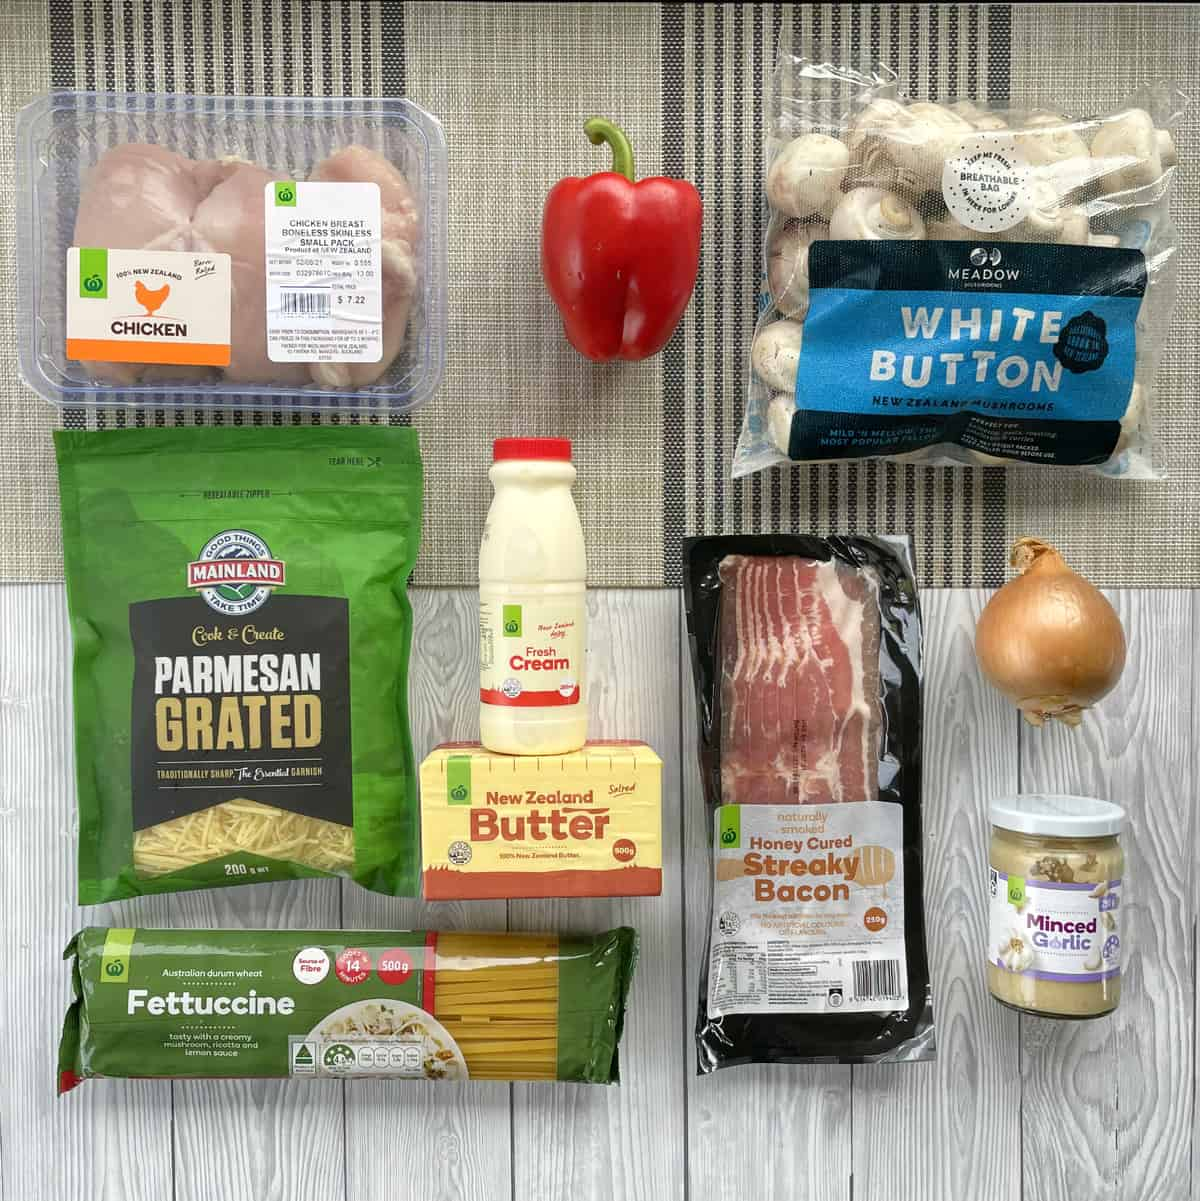 Ingredients from Countdown Supermarket to make Creamy Bacon Fettucine, see recipe card for full list